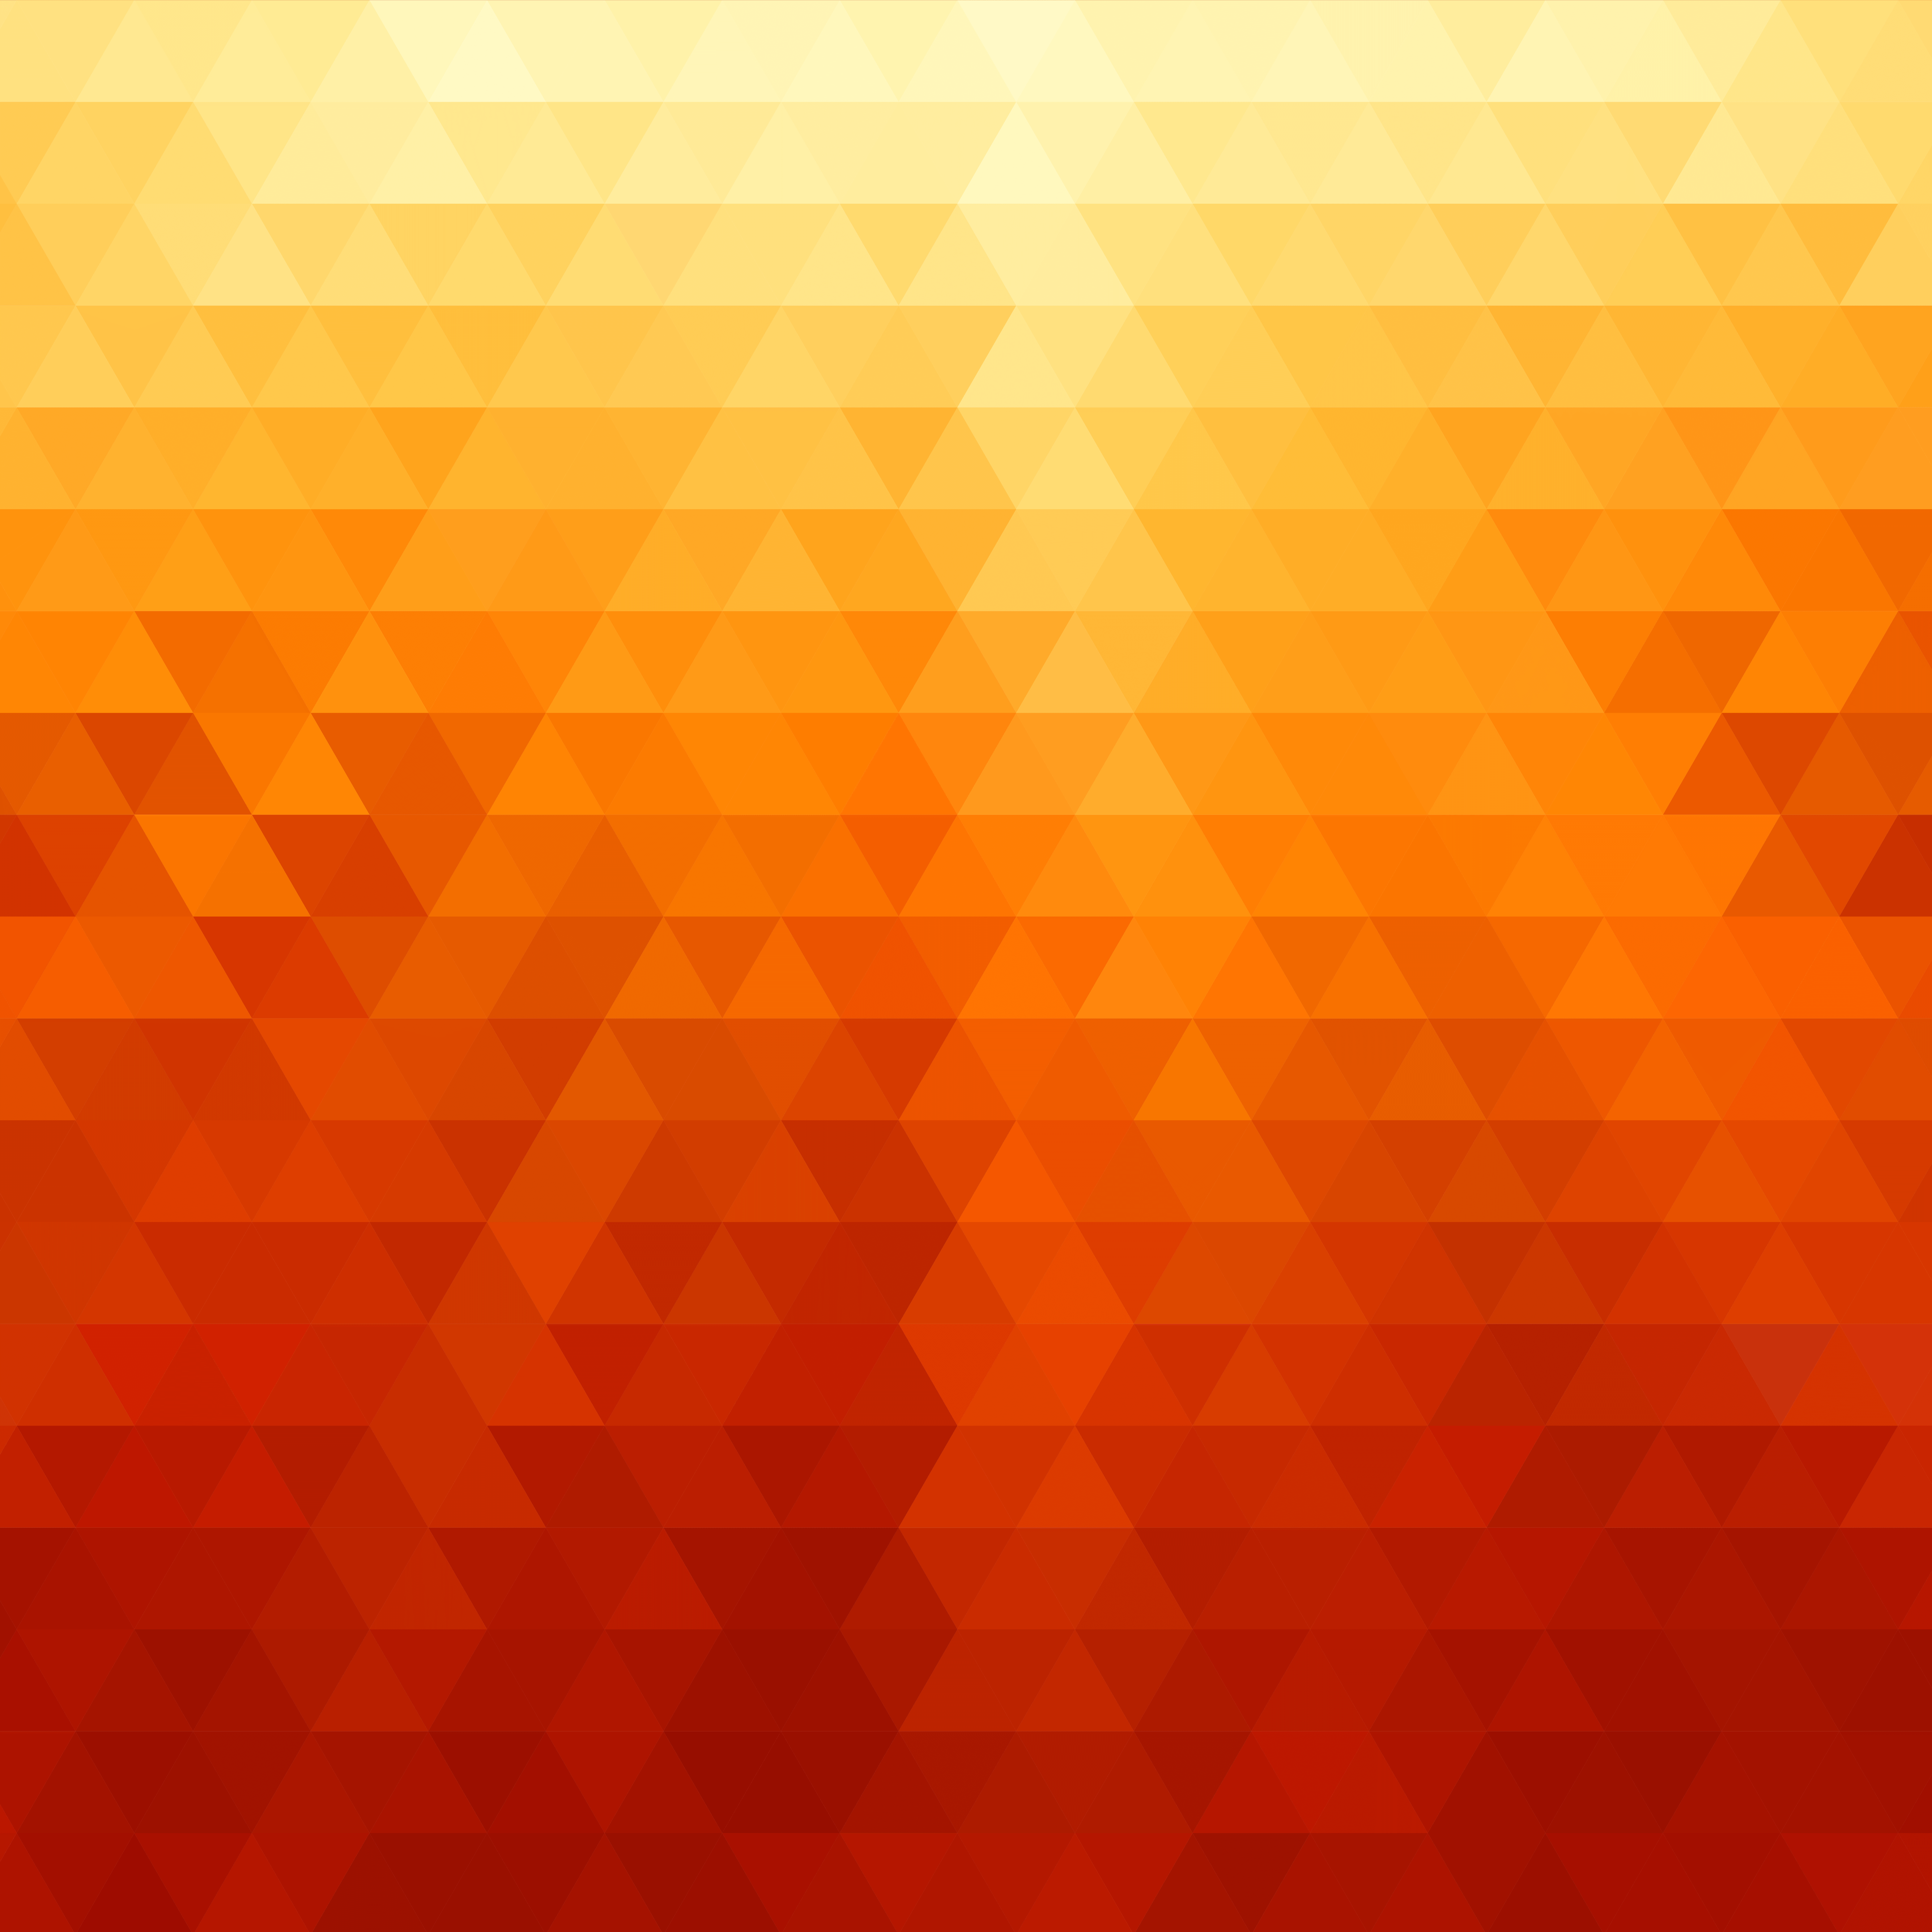 Orange Backgrounds - Wallpaper Cave